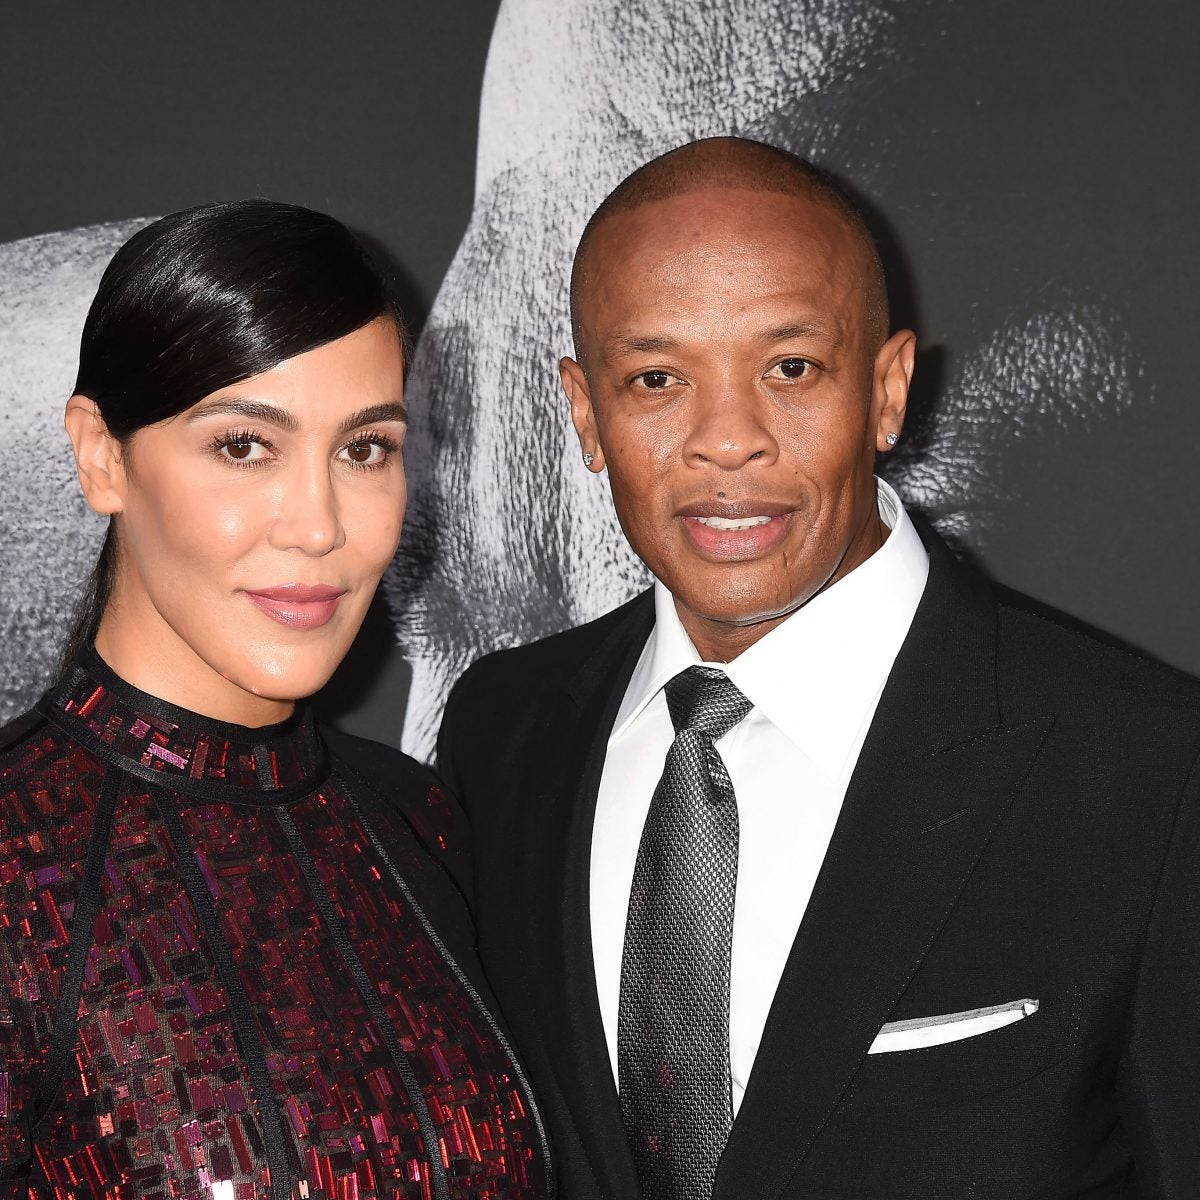 Dr. Dre Ordered To Pay $3 Million A Year In Spousal Support Until Nicole Young Remarries